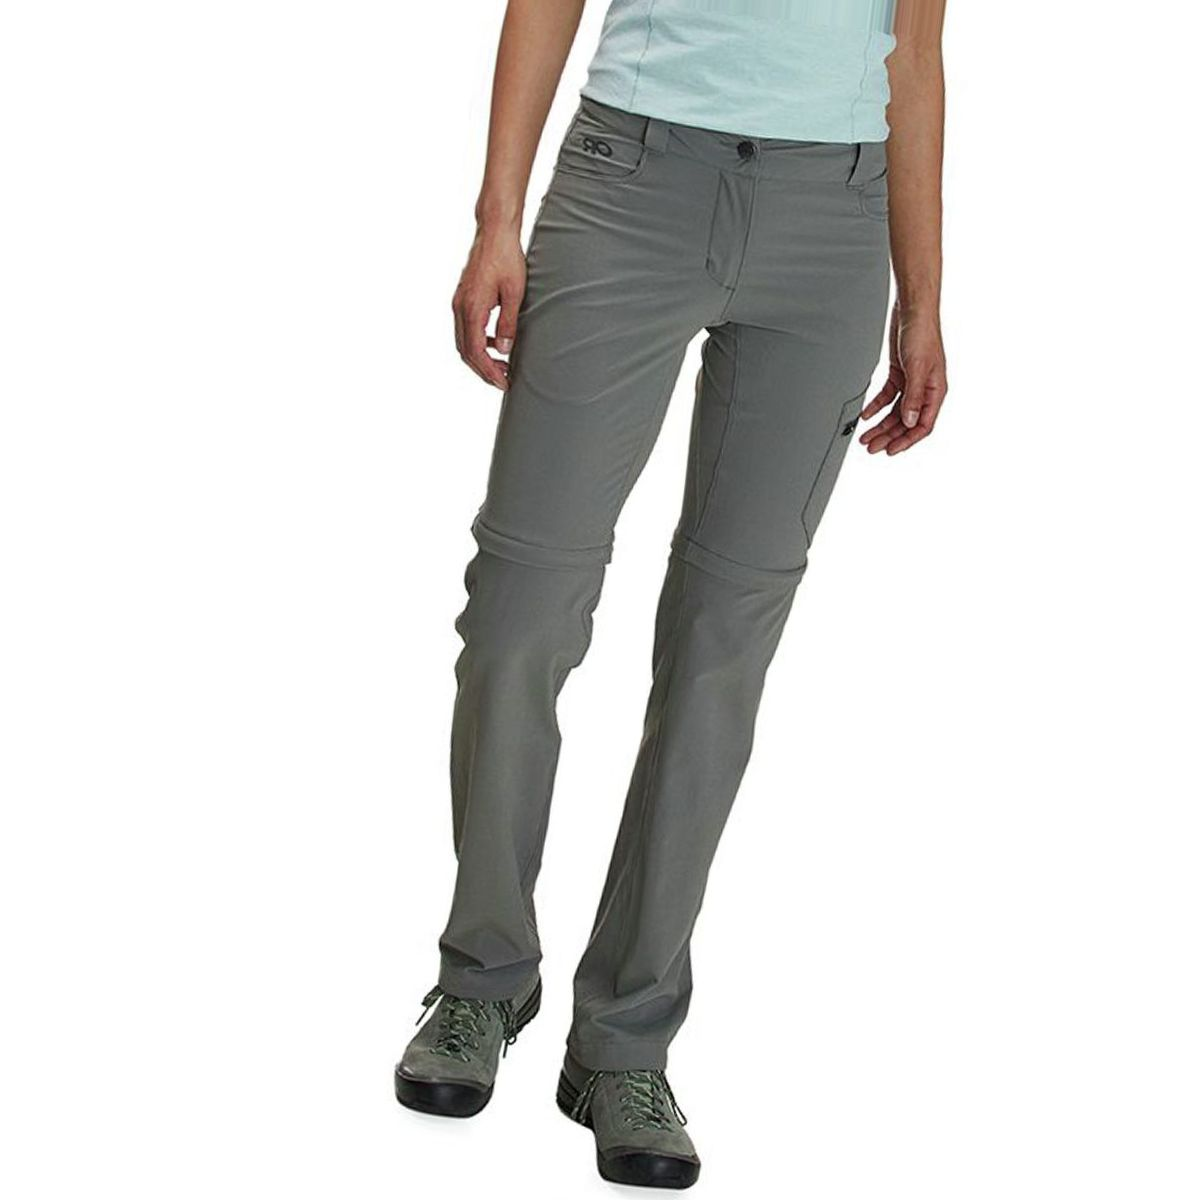 Outdoor Research Ferrosi Convertible Pant - Women's